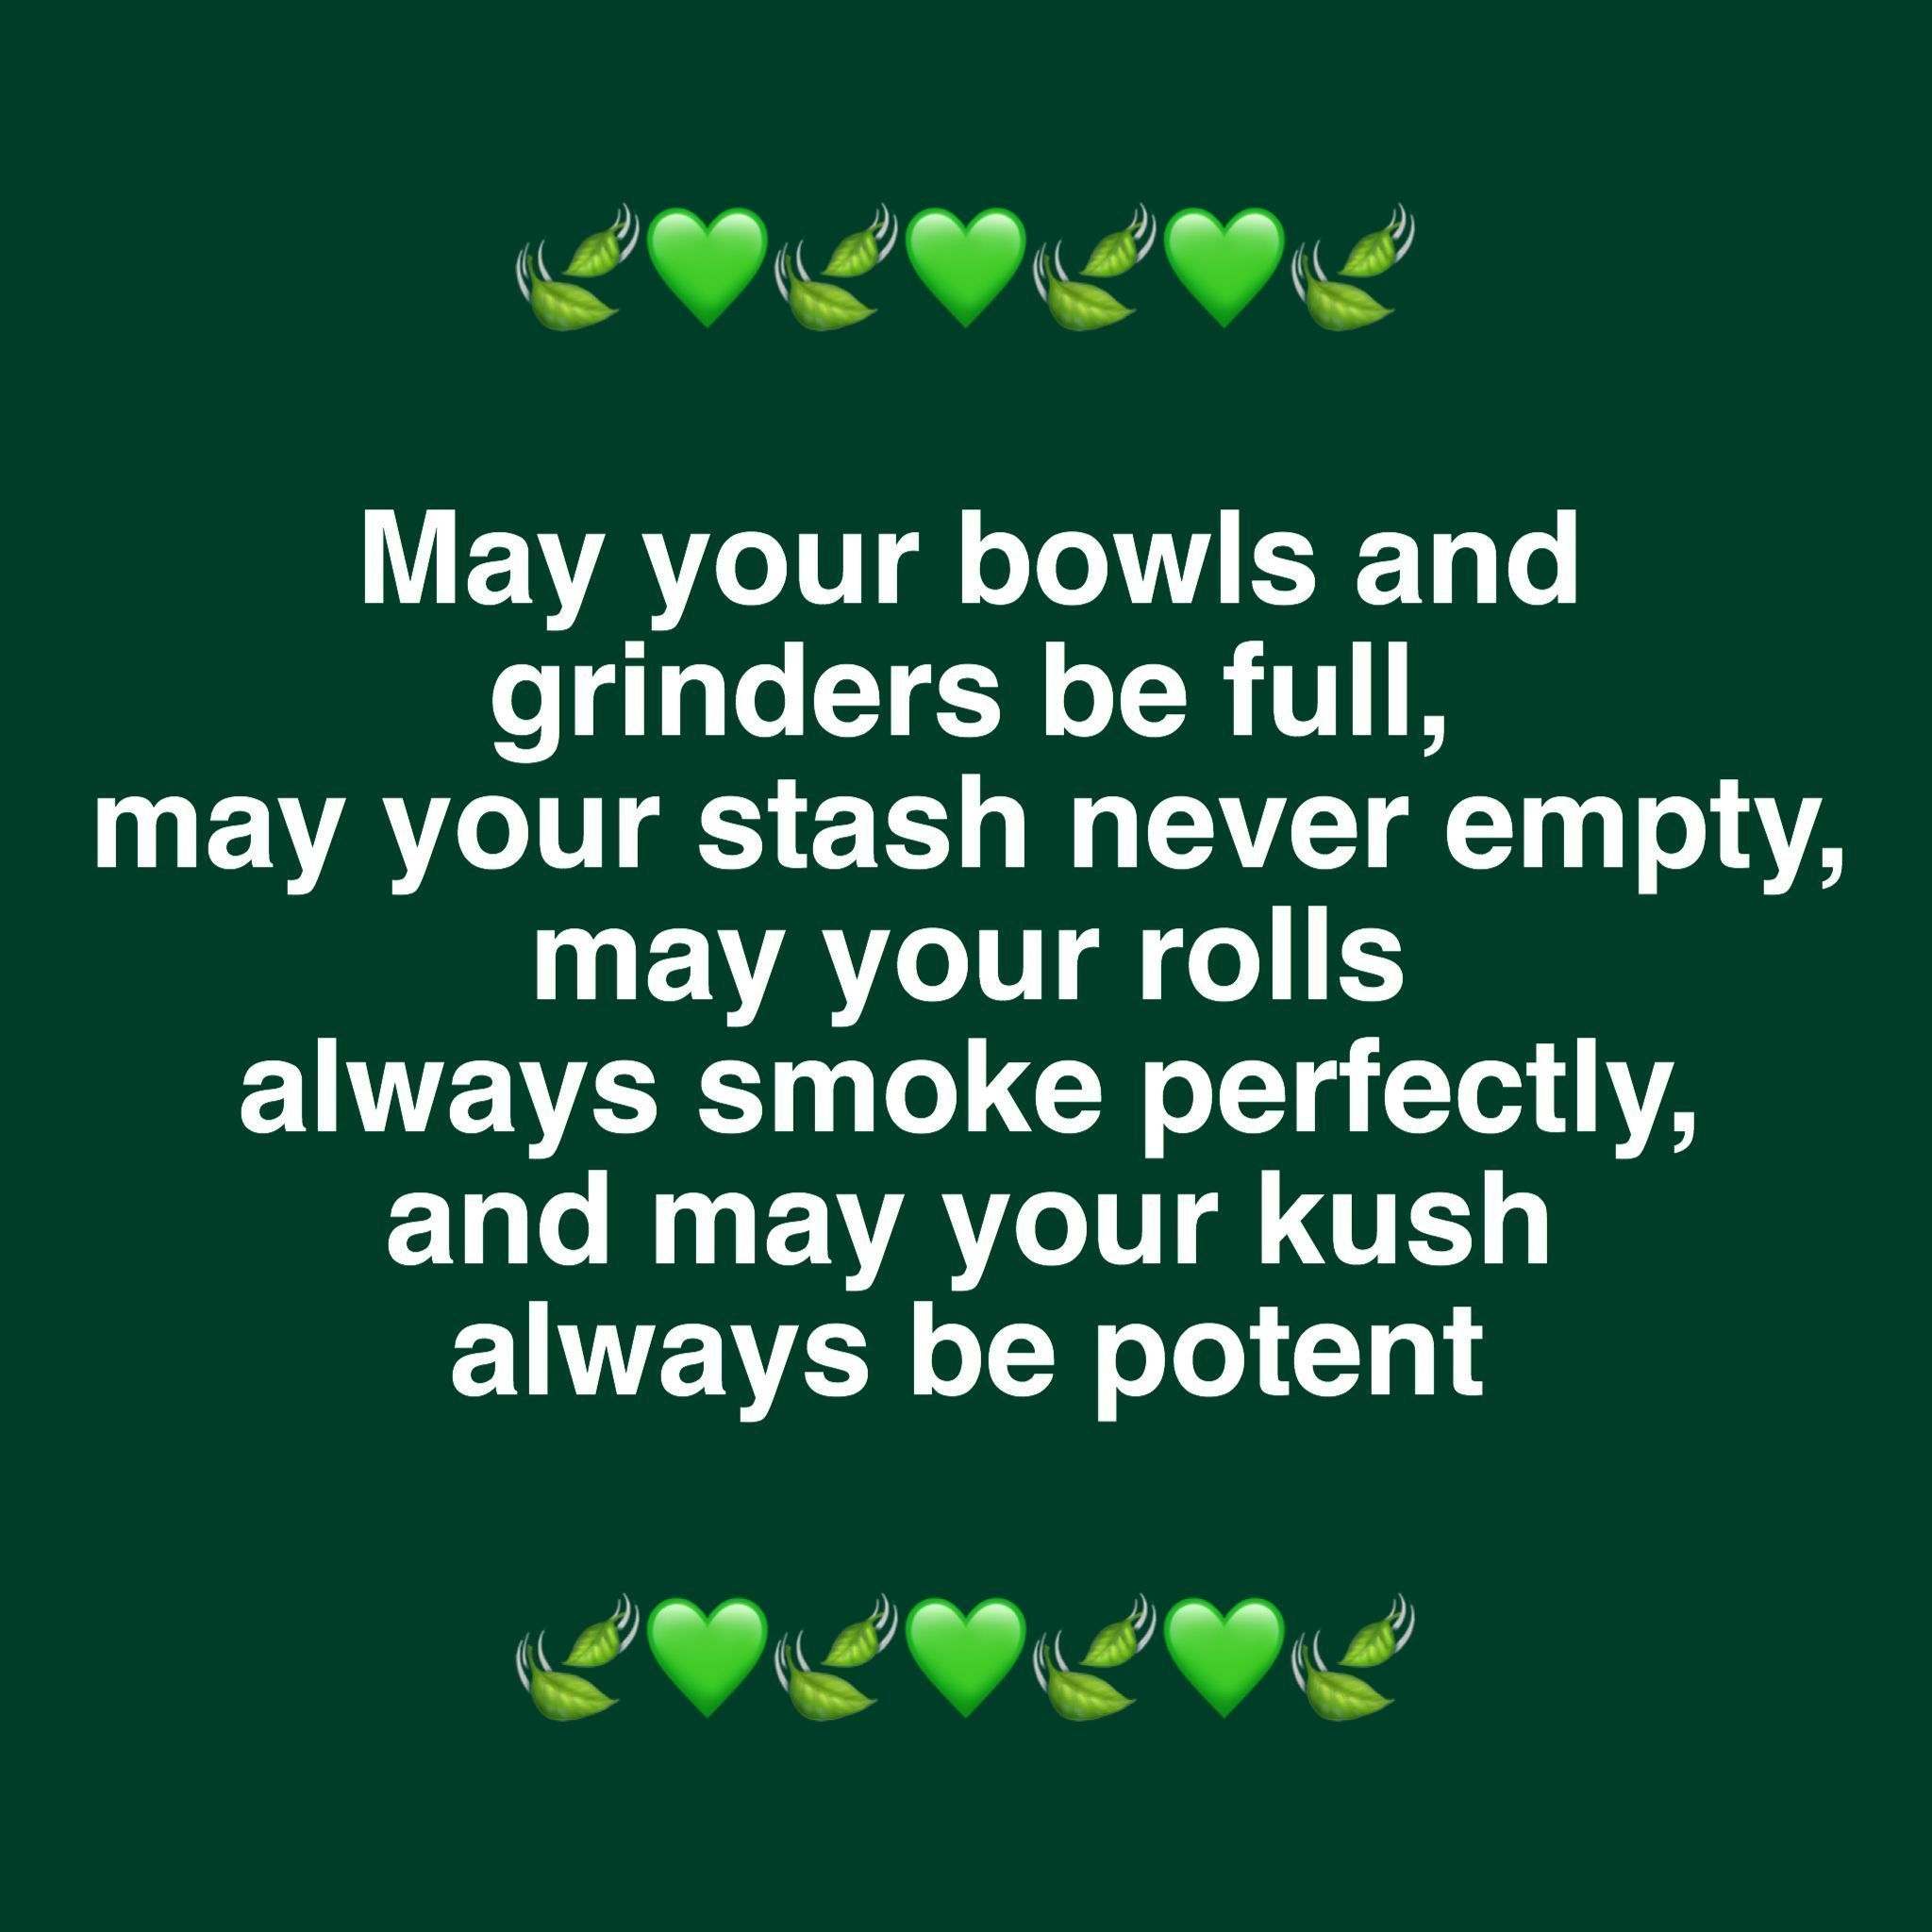 Spell for Weed Smokers #greenwitchcraft #greenwitchcraft Spell for Weed Smokers #greenwitchcraft #greenwitchcraft Spell for Weed Smokers #greenwitchcraft #greenwitchcraft Spell for Weed Smokers #greenwitchcraft #greenwitchcraft Spell for Weed Smokers #greenwitchcraft #greenwitchcraft Spell for Weed Smokers #greenwitchcraft #greenwitchcraft Spell for Weed Smokers #greenwitchcraft #greenwitchcraft Spell for Weed Smokers #greenwitchcraft #greenwitchcraft Spell for Weed Smokers #greenwitchcraft #gre #greenwitchcraft